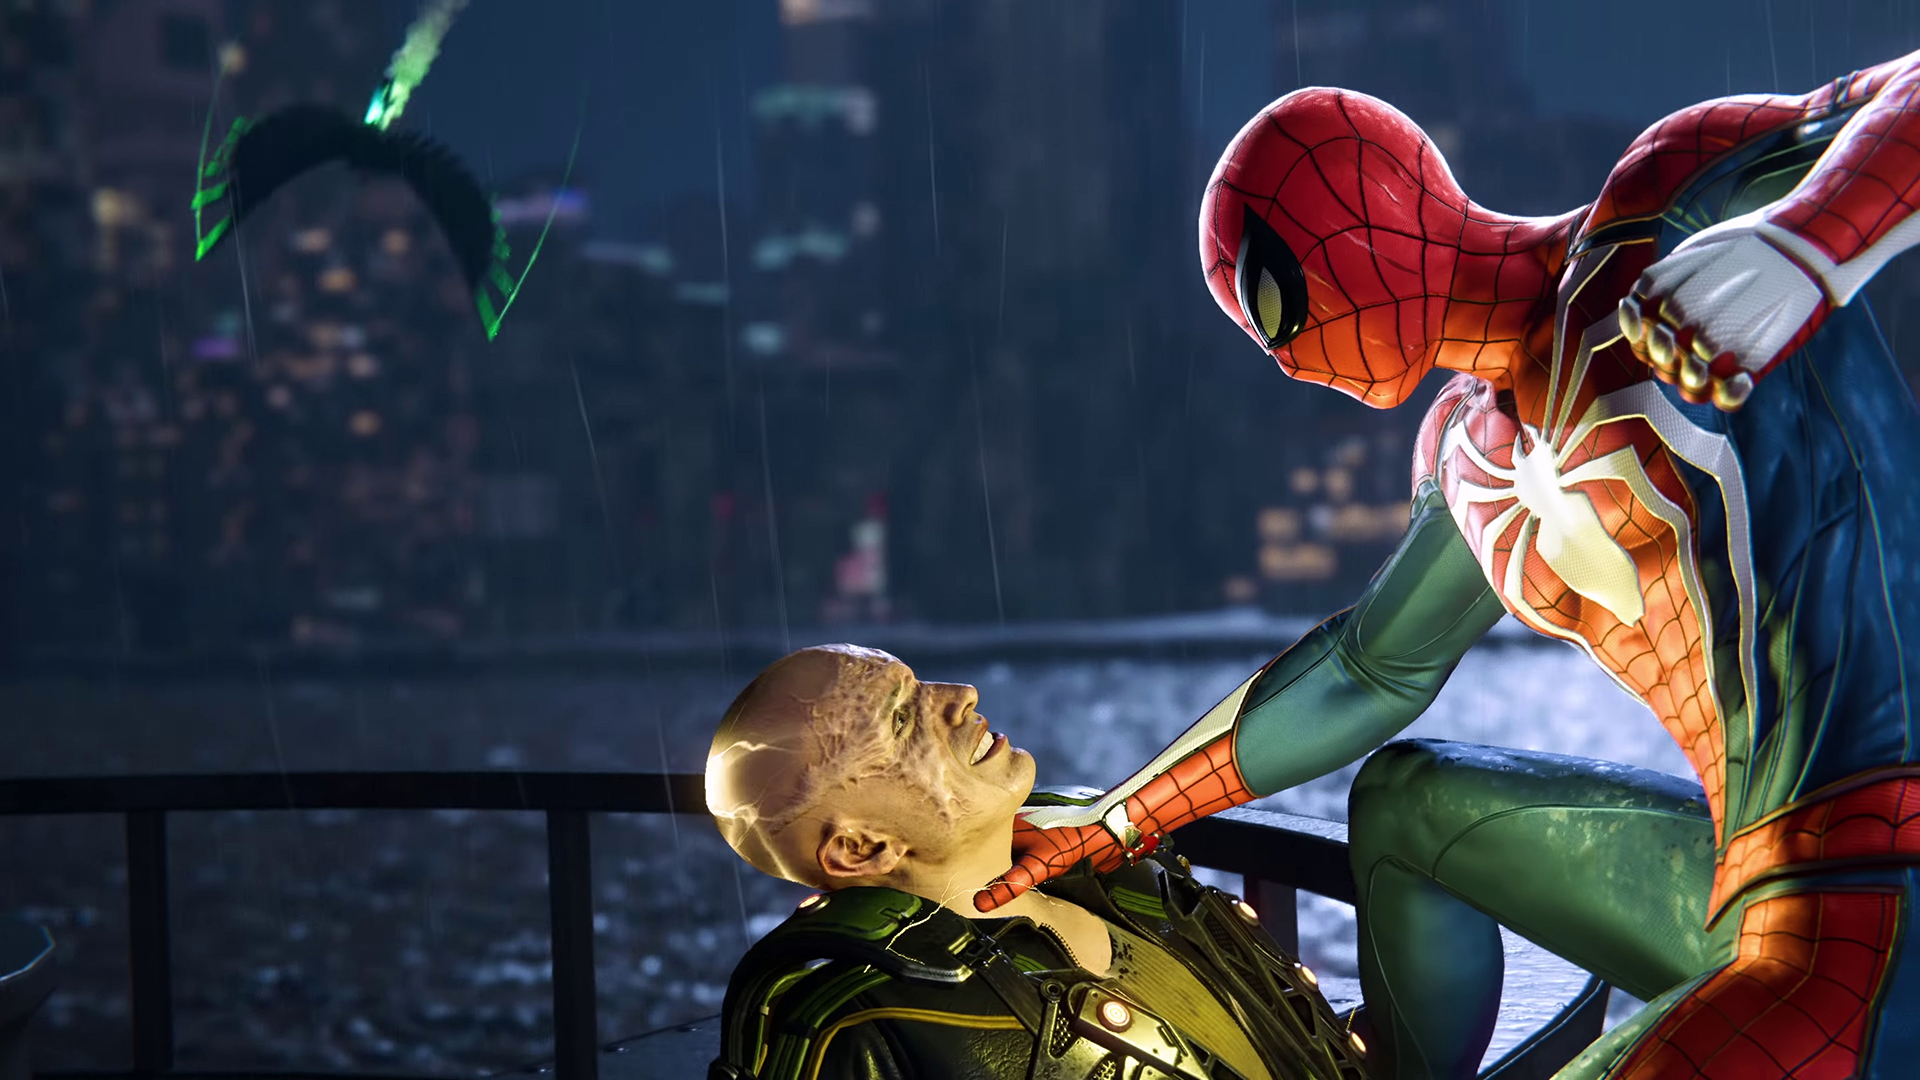 Game Of Spider Man Hd Wallpaper: Marvel's Spider-Man Wallpapers In Ultra HD